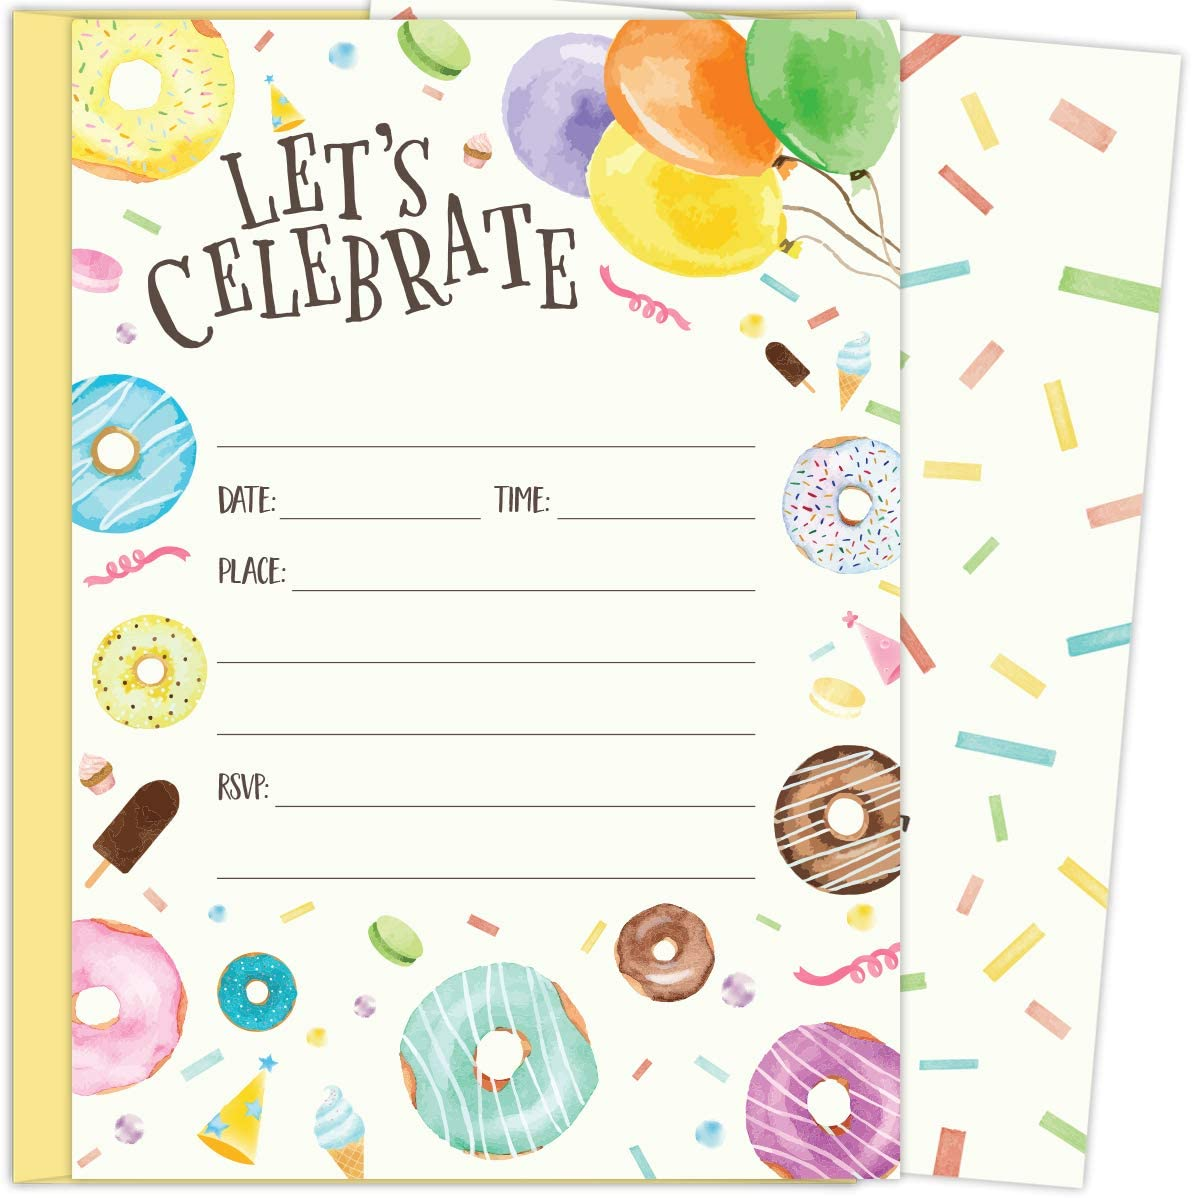 Koko Paper Co Donut and Balloon Invitations. Set of 25 5x7 Fill-in Invitations with Yellow Envelopes. Perfect for Birthday Parties or Other Events.